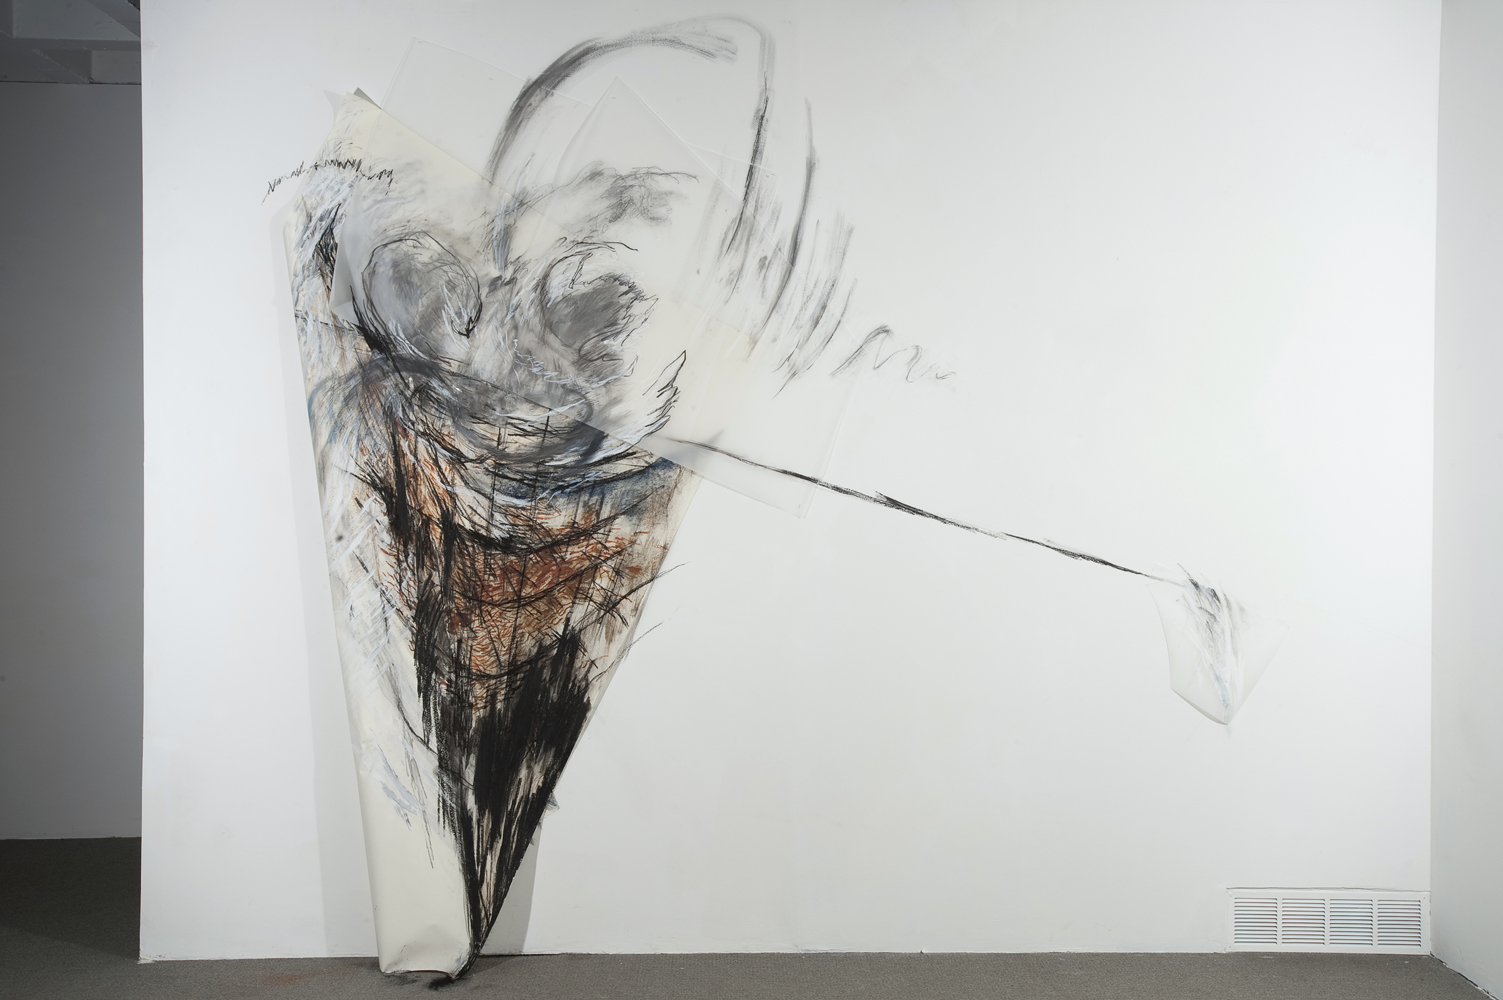 Prickly Wrap , 2010, Graphite, pastel oil bar on paper and mylar, 118 x 132 inches